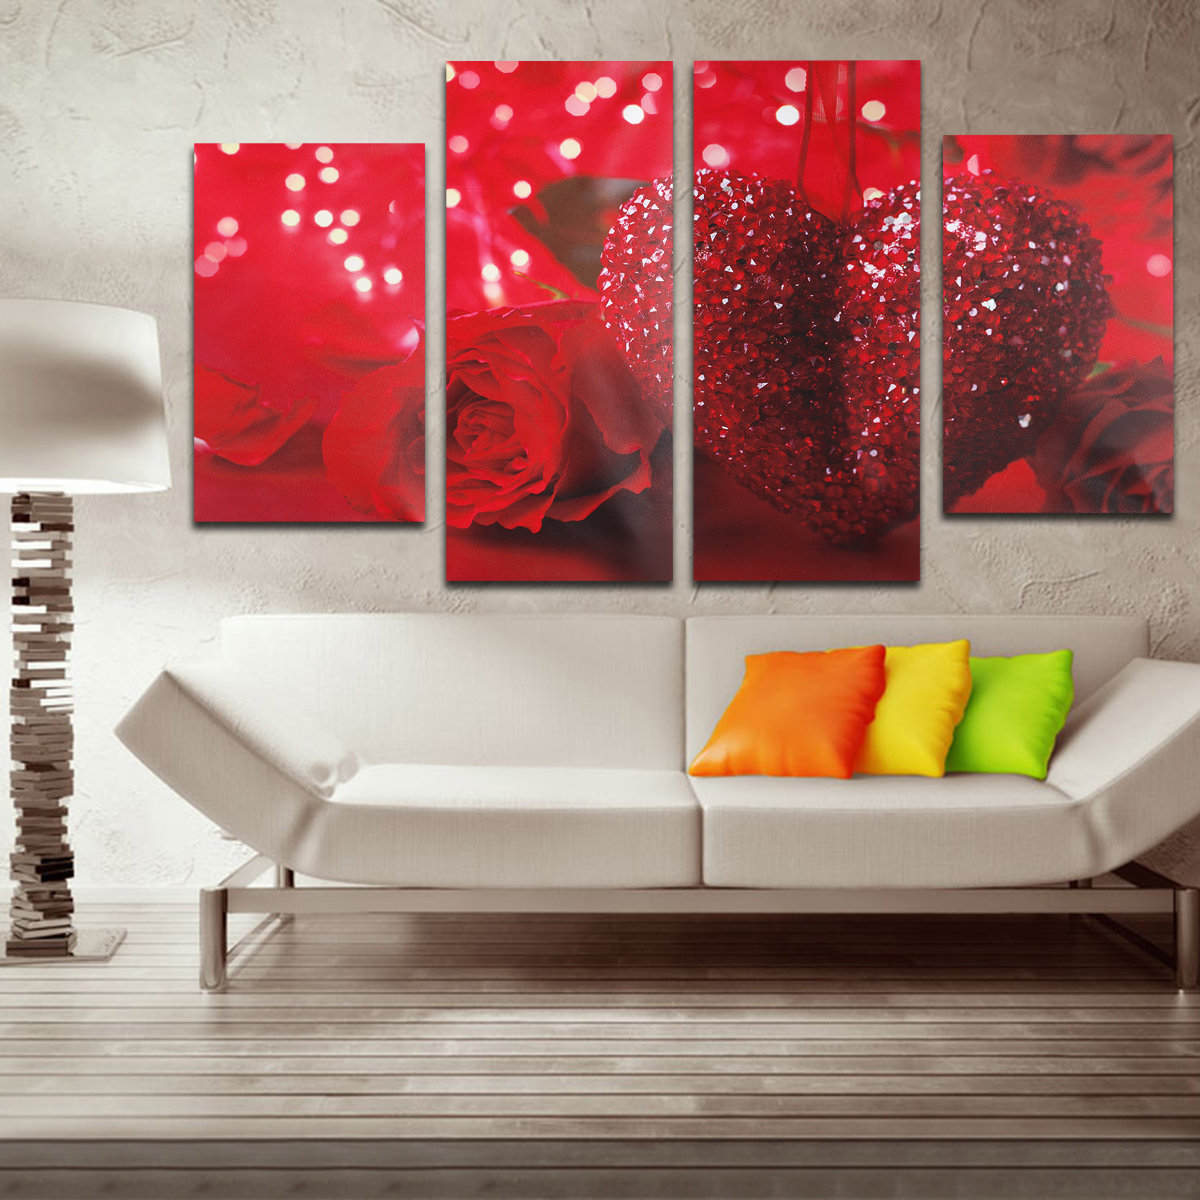 4Pcs Red Heart Love Floral Flower Rose Pattern Canvas Wall Art Picture 4 Panel Gift Wall Hanging